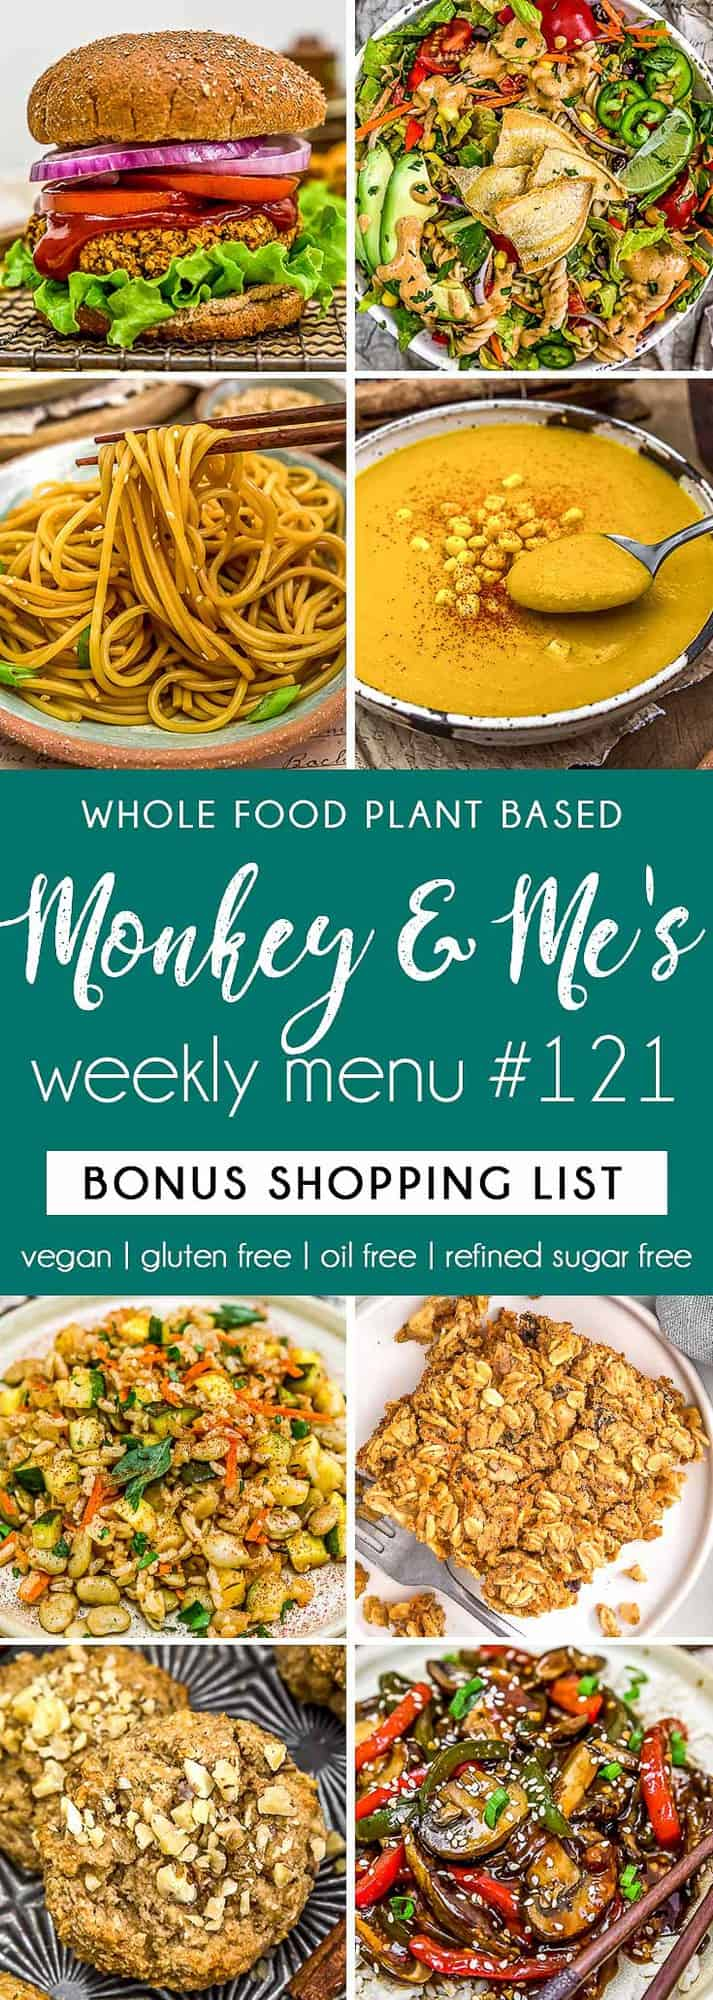 Monkey and Me's Menu 122 featuring 8 recipes